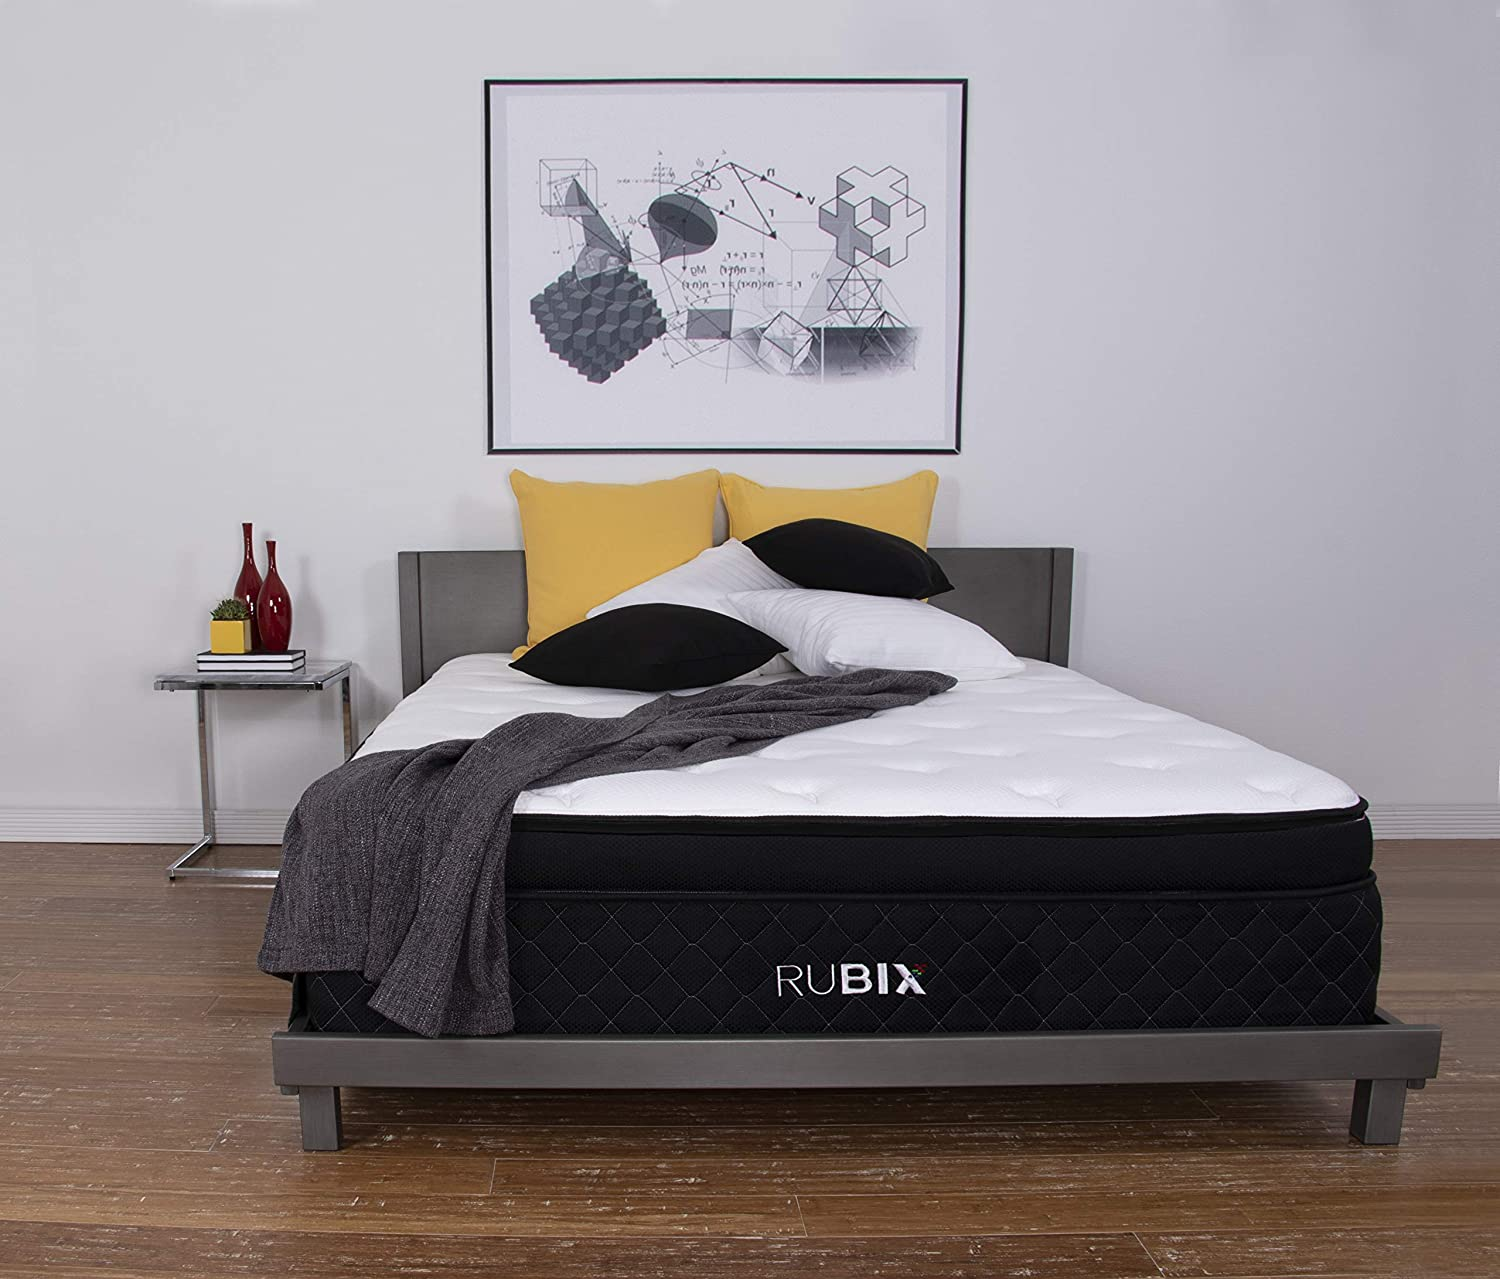 Brooklyn Bedding Rubix 14-Inch Customizable Eurotop Mattress with Energex, Queen